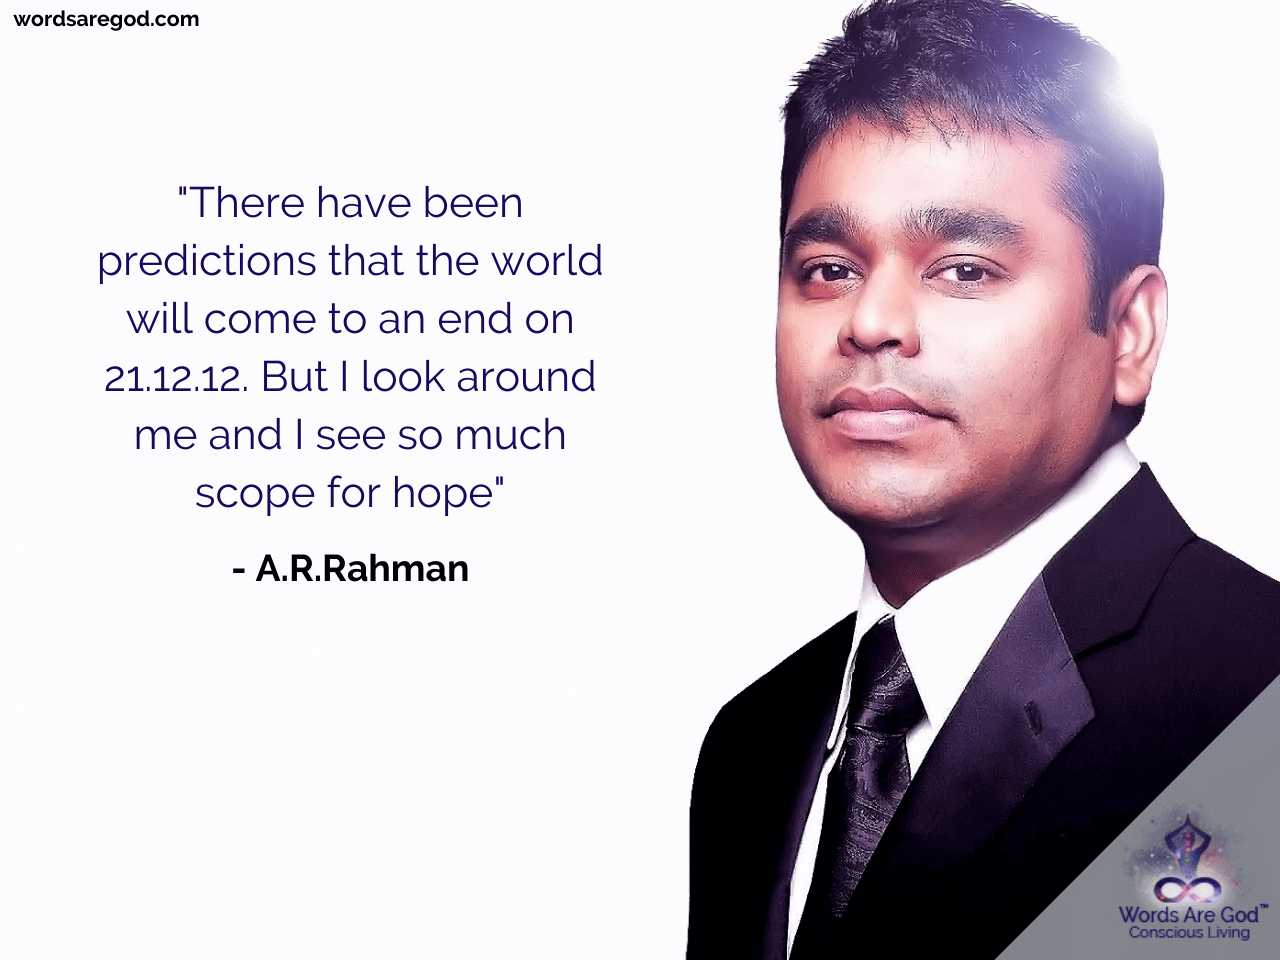 A.R.Rahman Music Quote